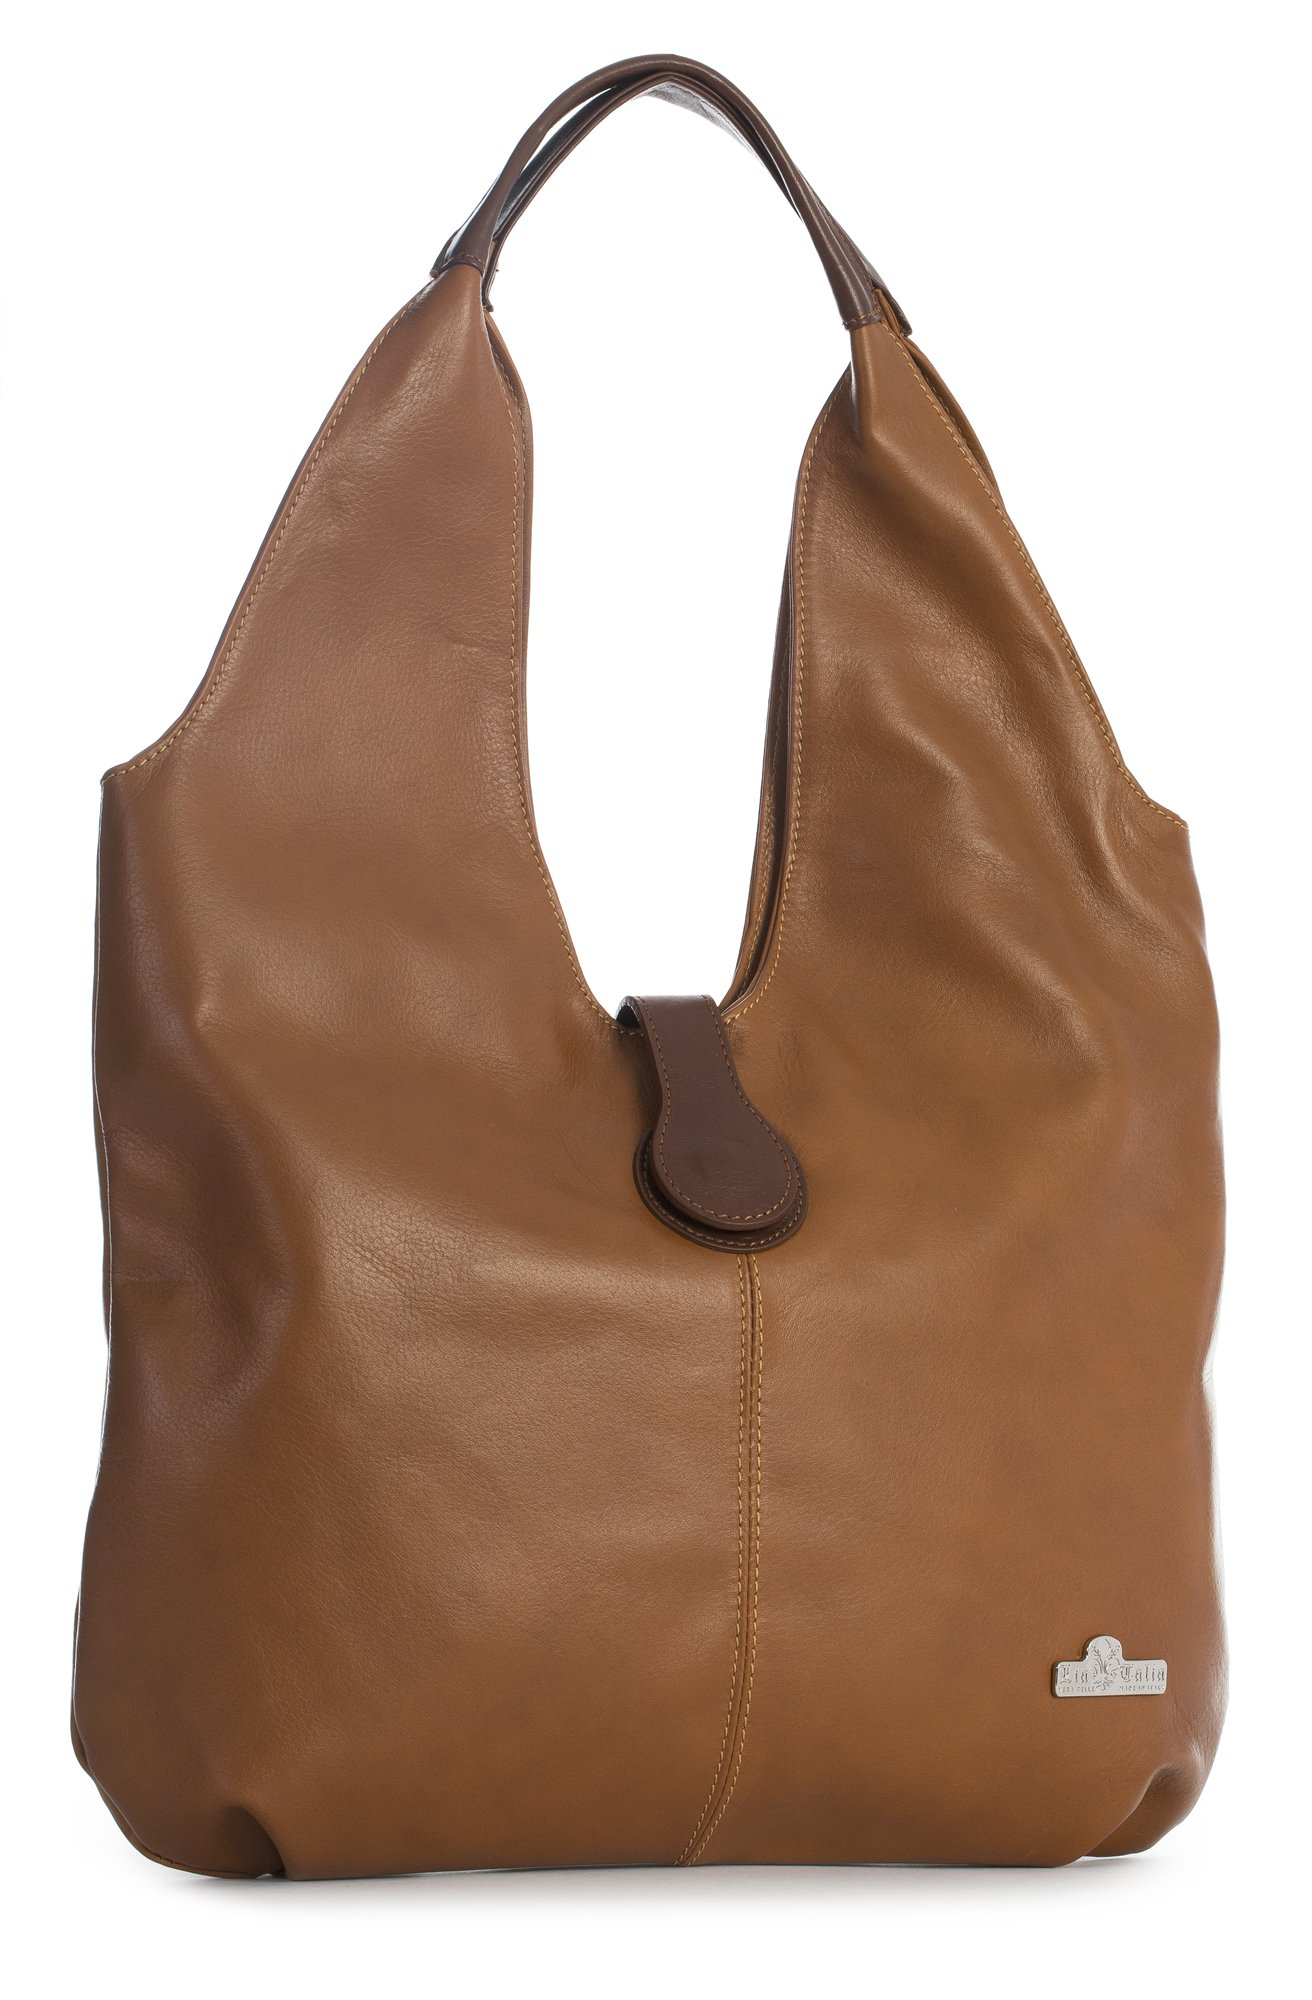 LiaTalia Genuine Italian Soft Leather Large Hobo Shopper Shoulder bag with Protective Dust Bag - Zoe [Medium Tan - Brown Trim]